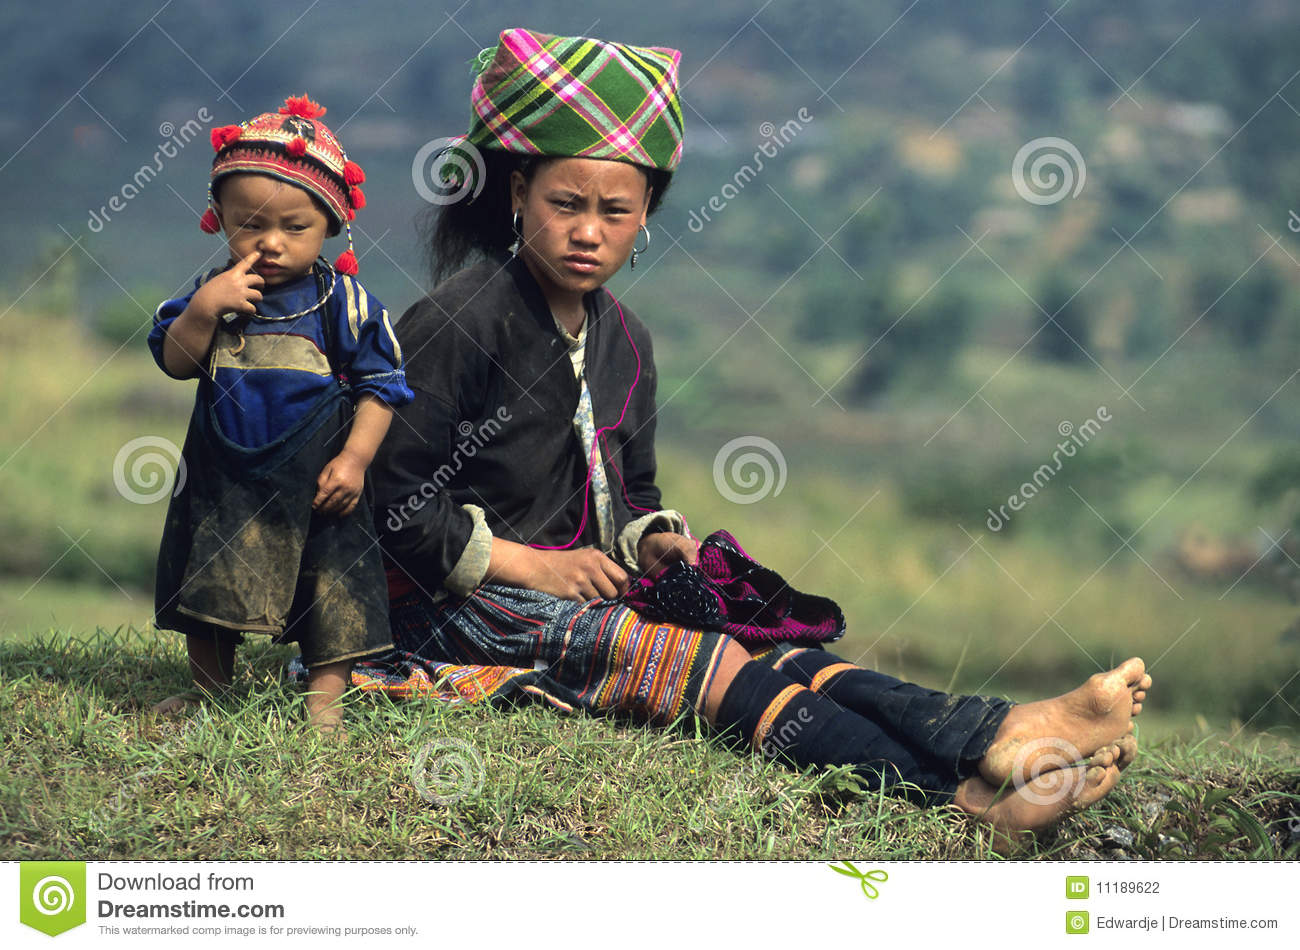 Flower Hmong Mother and Child